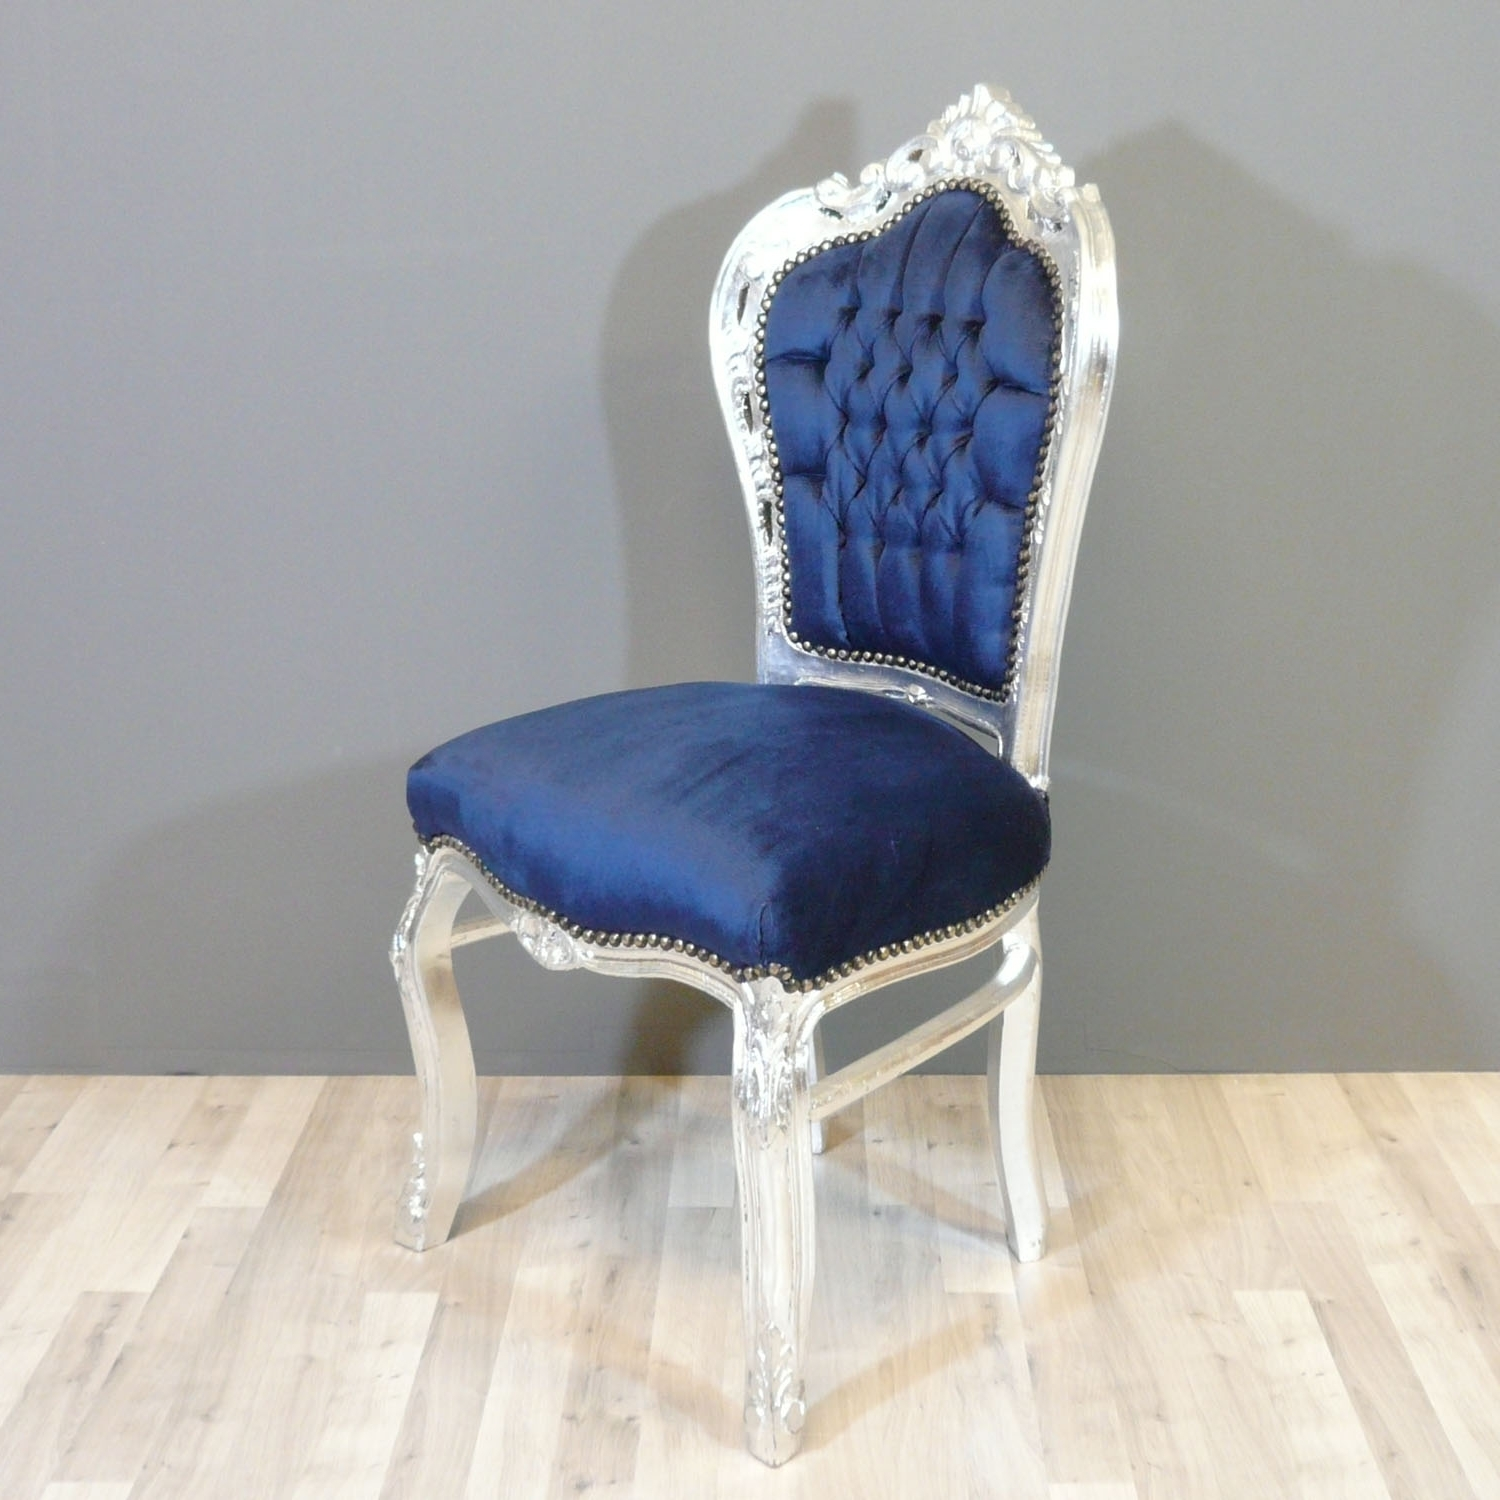 2017 Blue Chaises Throughout Baroque Blue Chair – Chairs Baroque (View 3 of 15)